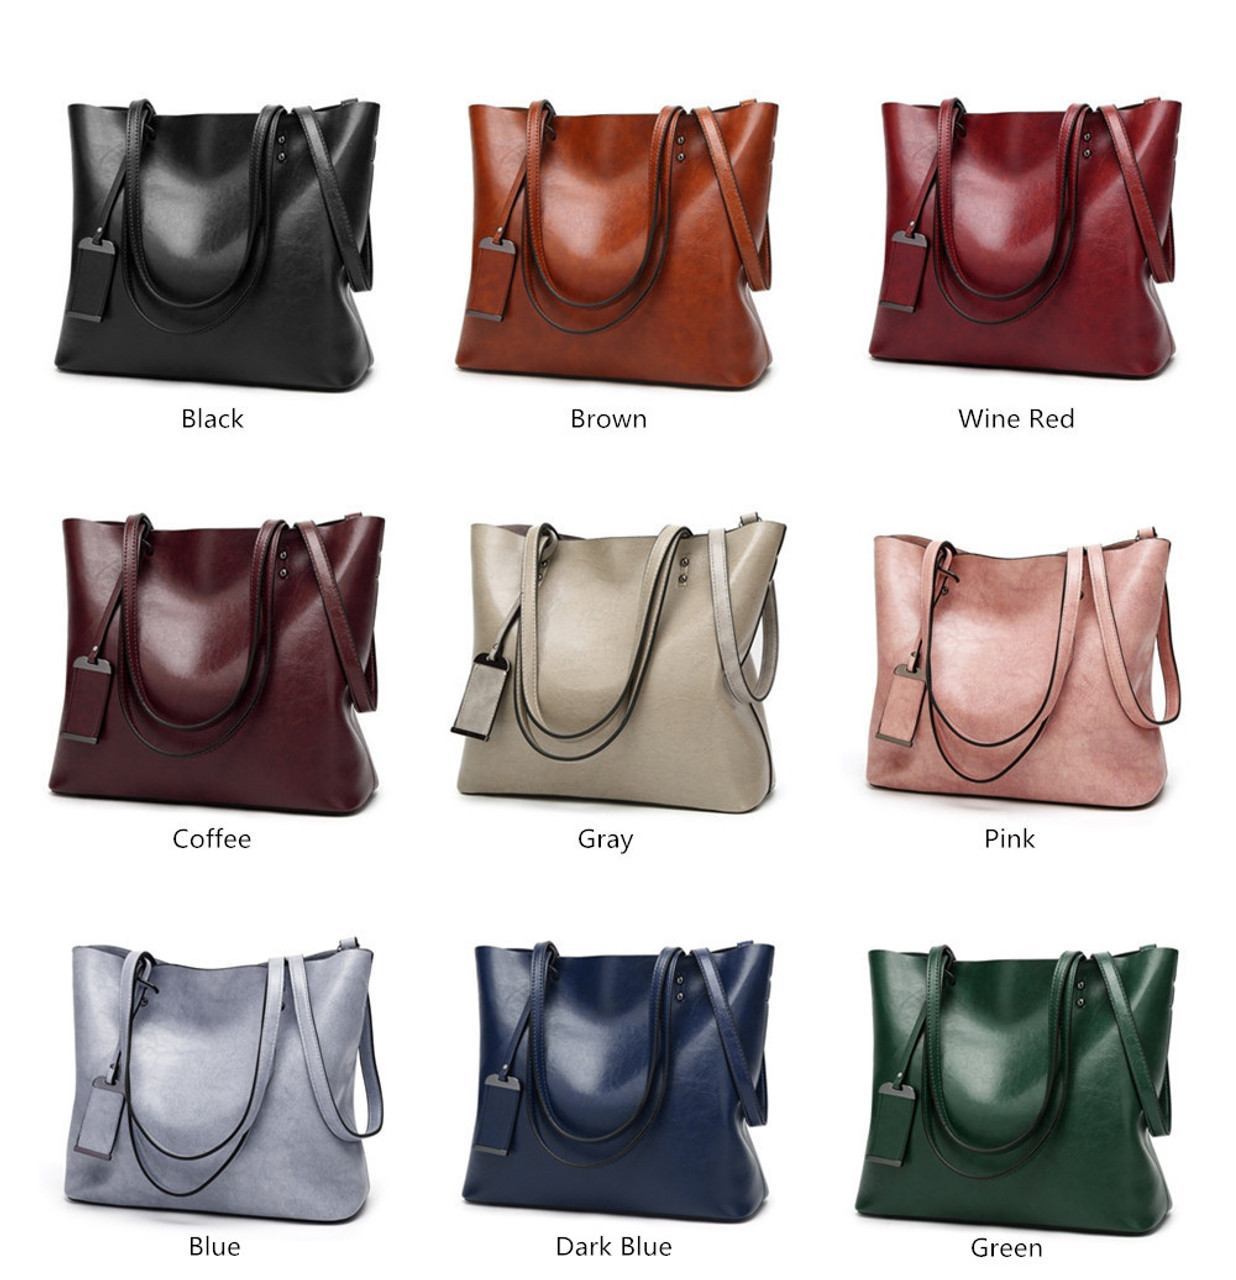 613925759a ... GORONLY Brand New Leather Tote Bag Women Handbags Designer Large  Capacity Shoulder Bags Fashion Lady Purses ...